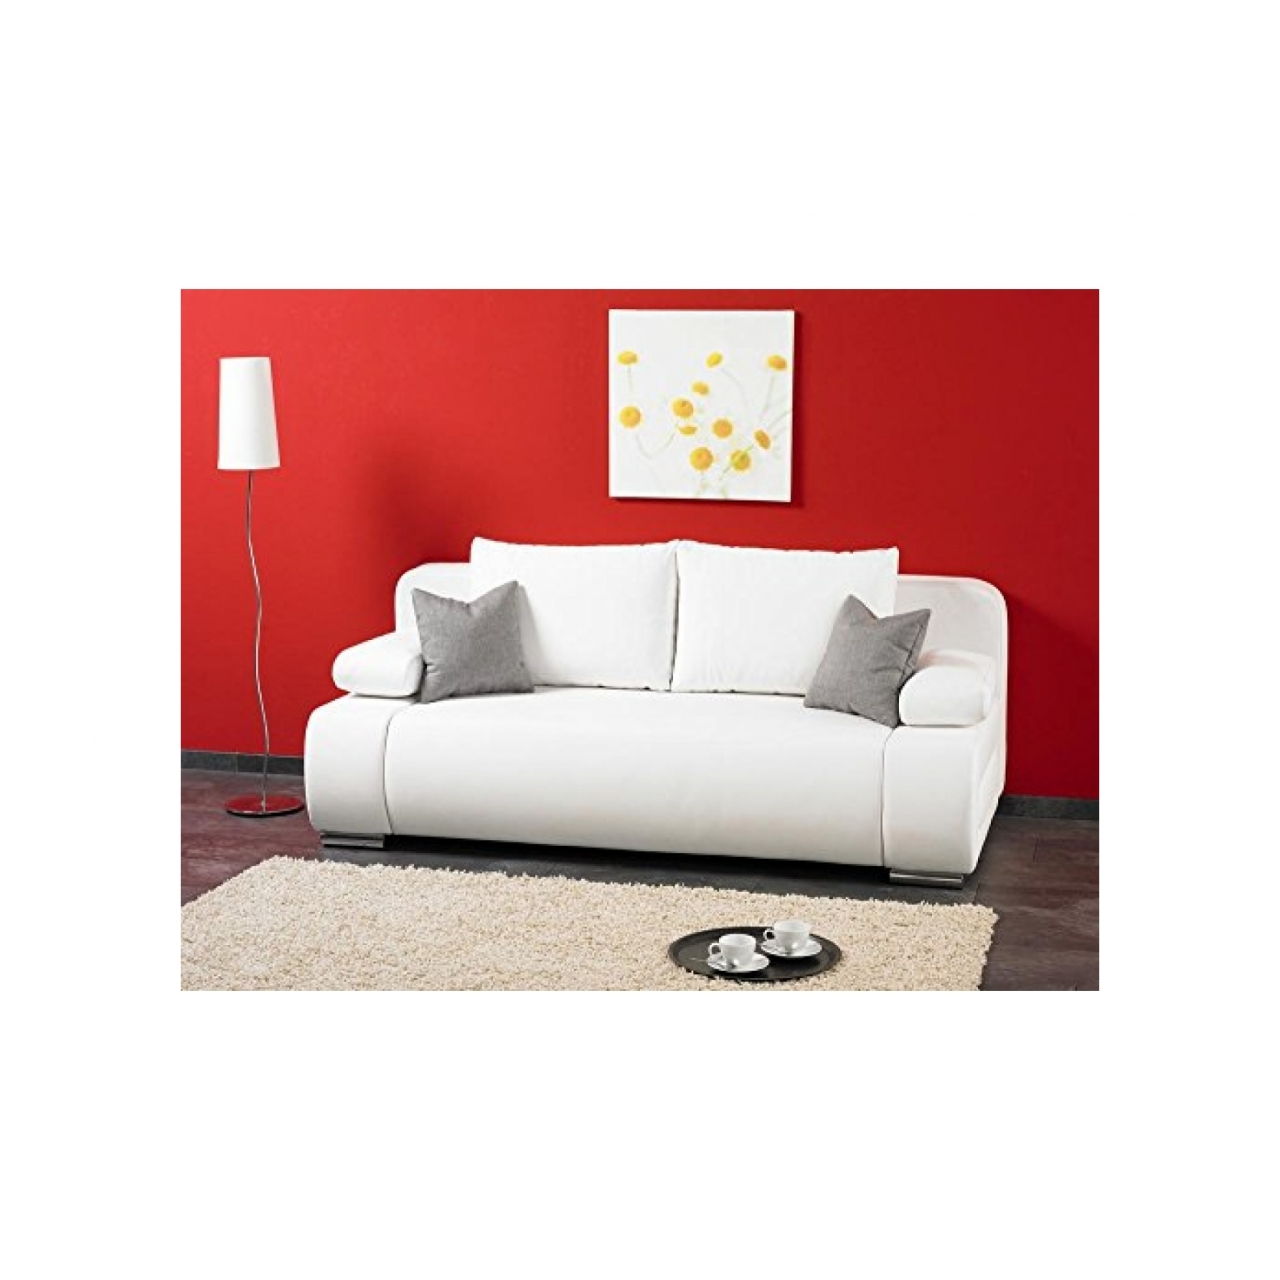 Lifestyle4living schlafsofa test - Lifestyle4living schlafsofa ...